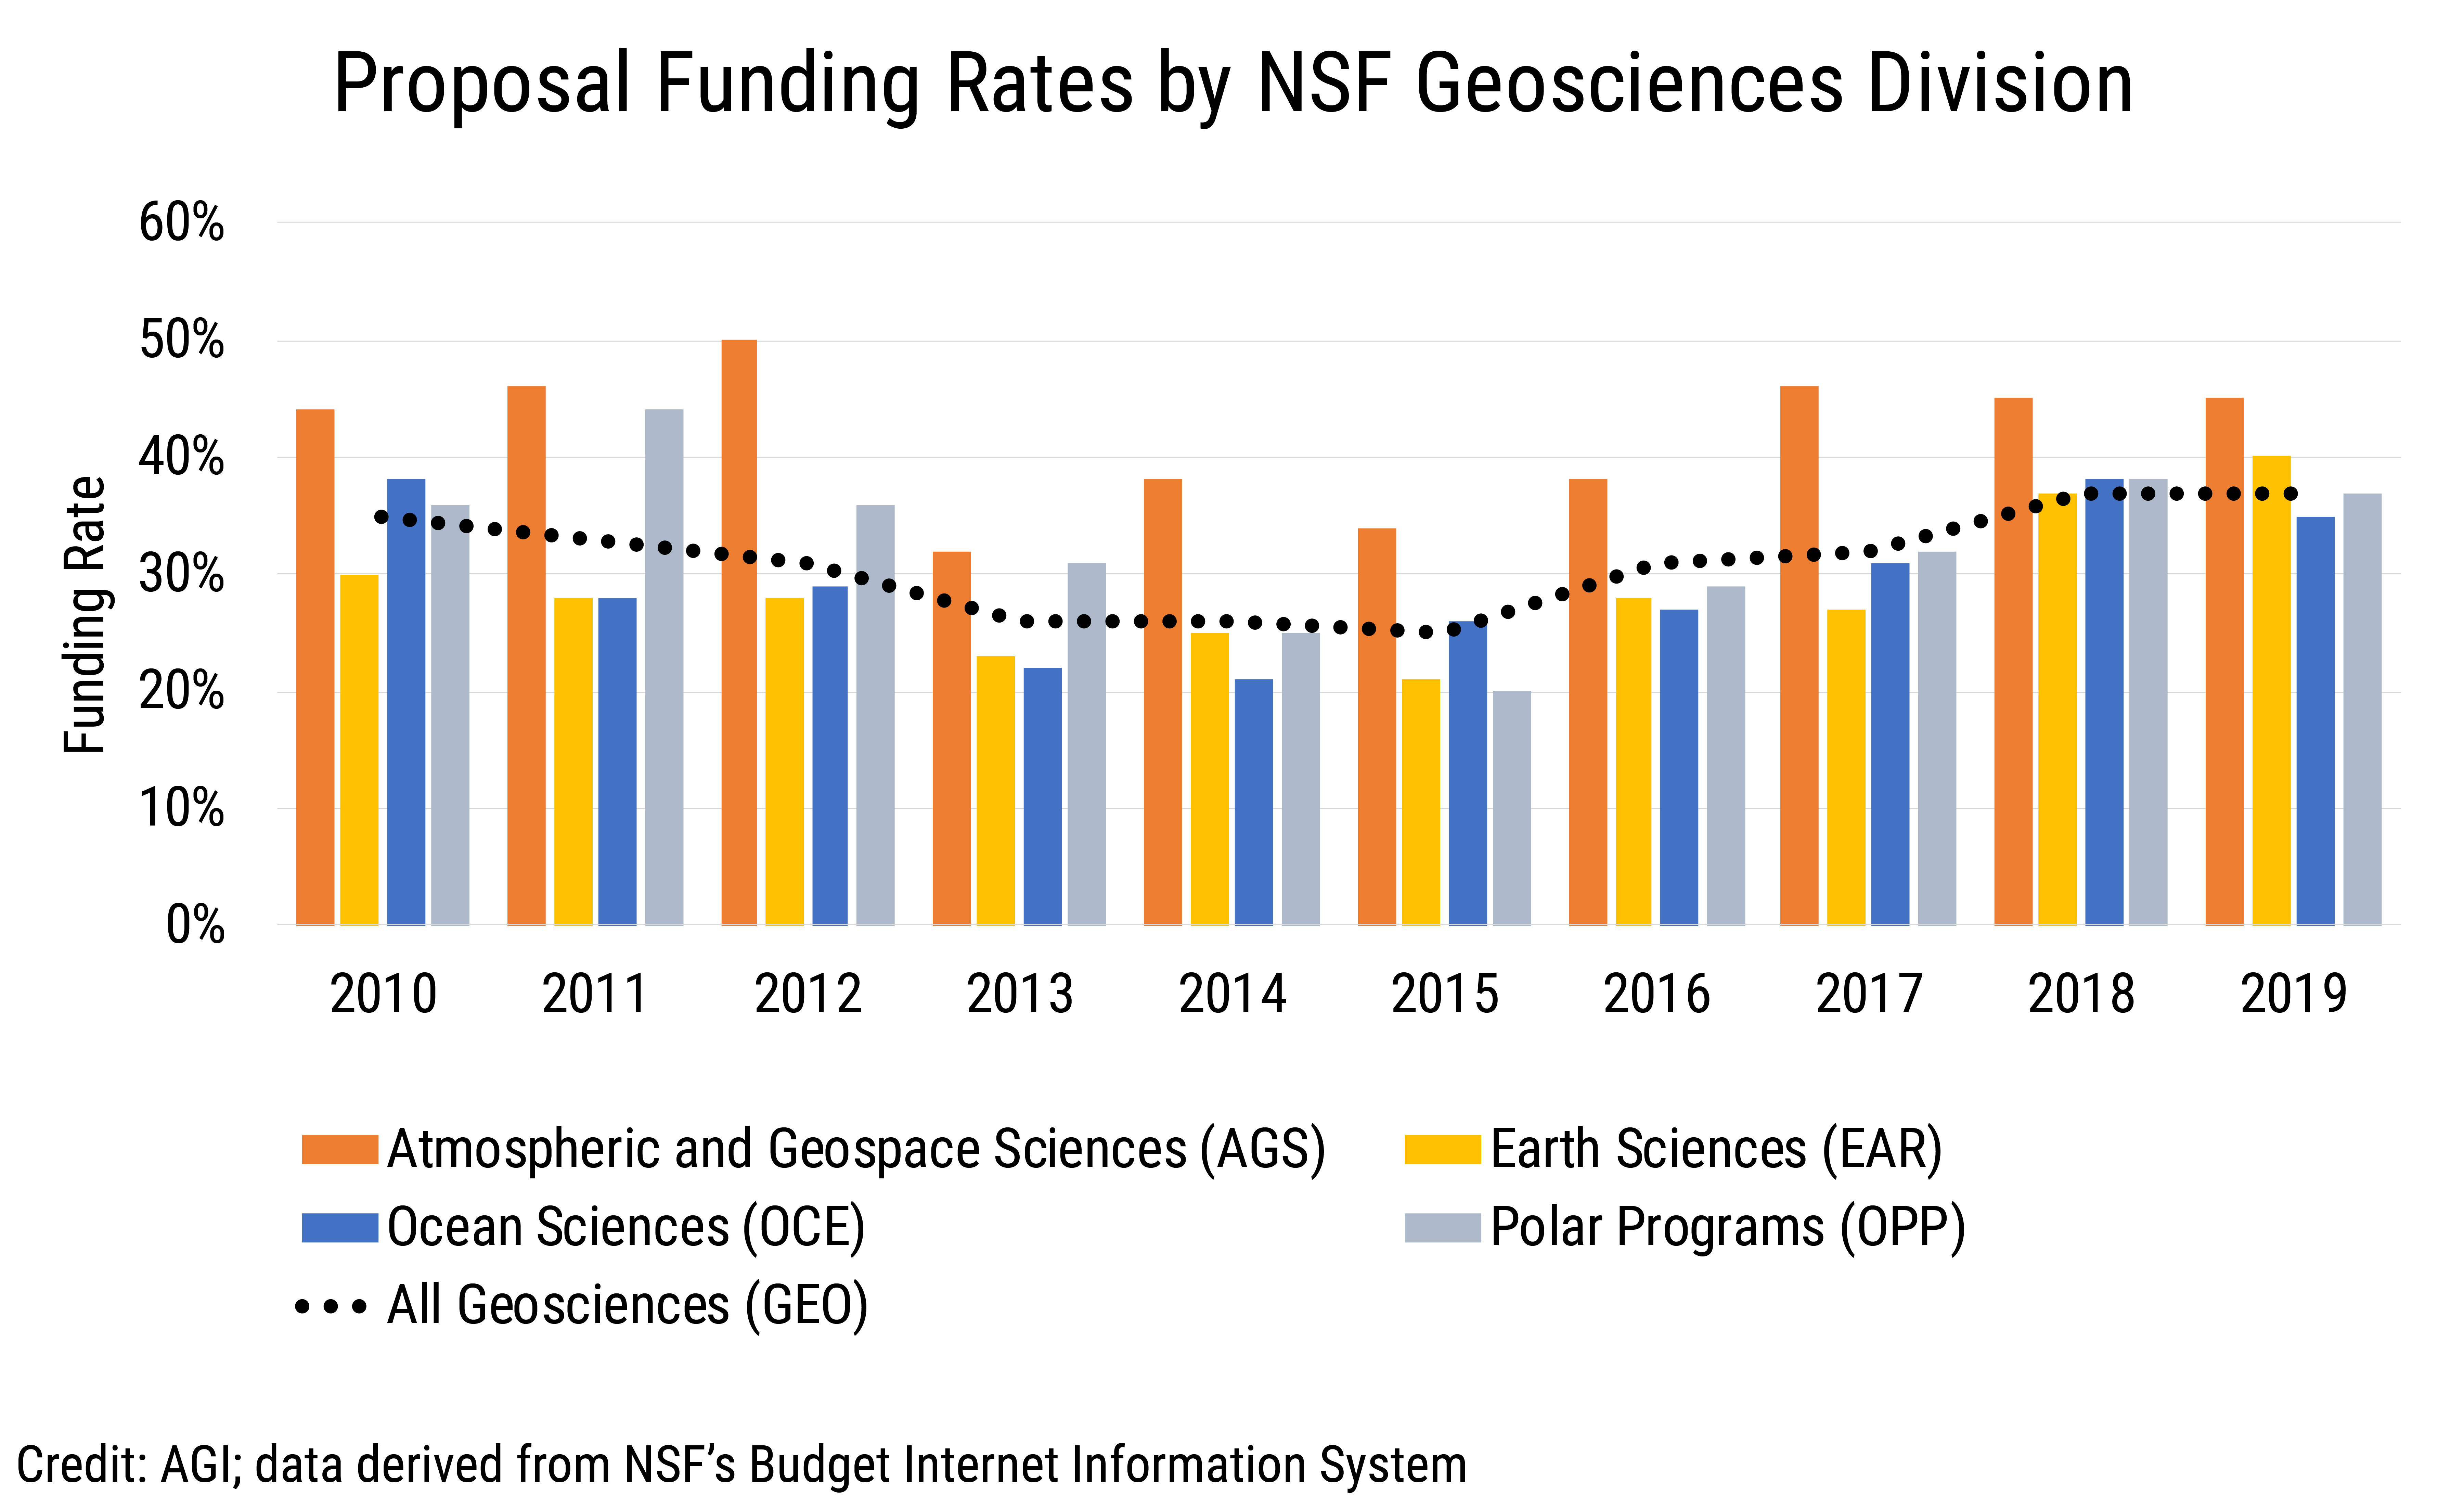 Data Brief 2019-016 chart 02: Proposal Funding Rates by NSF Geosciences Division (credit: AGI; data derived from NSF BIIS)